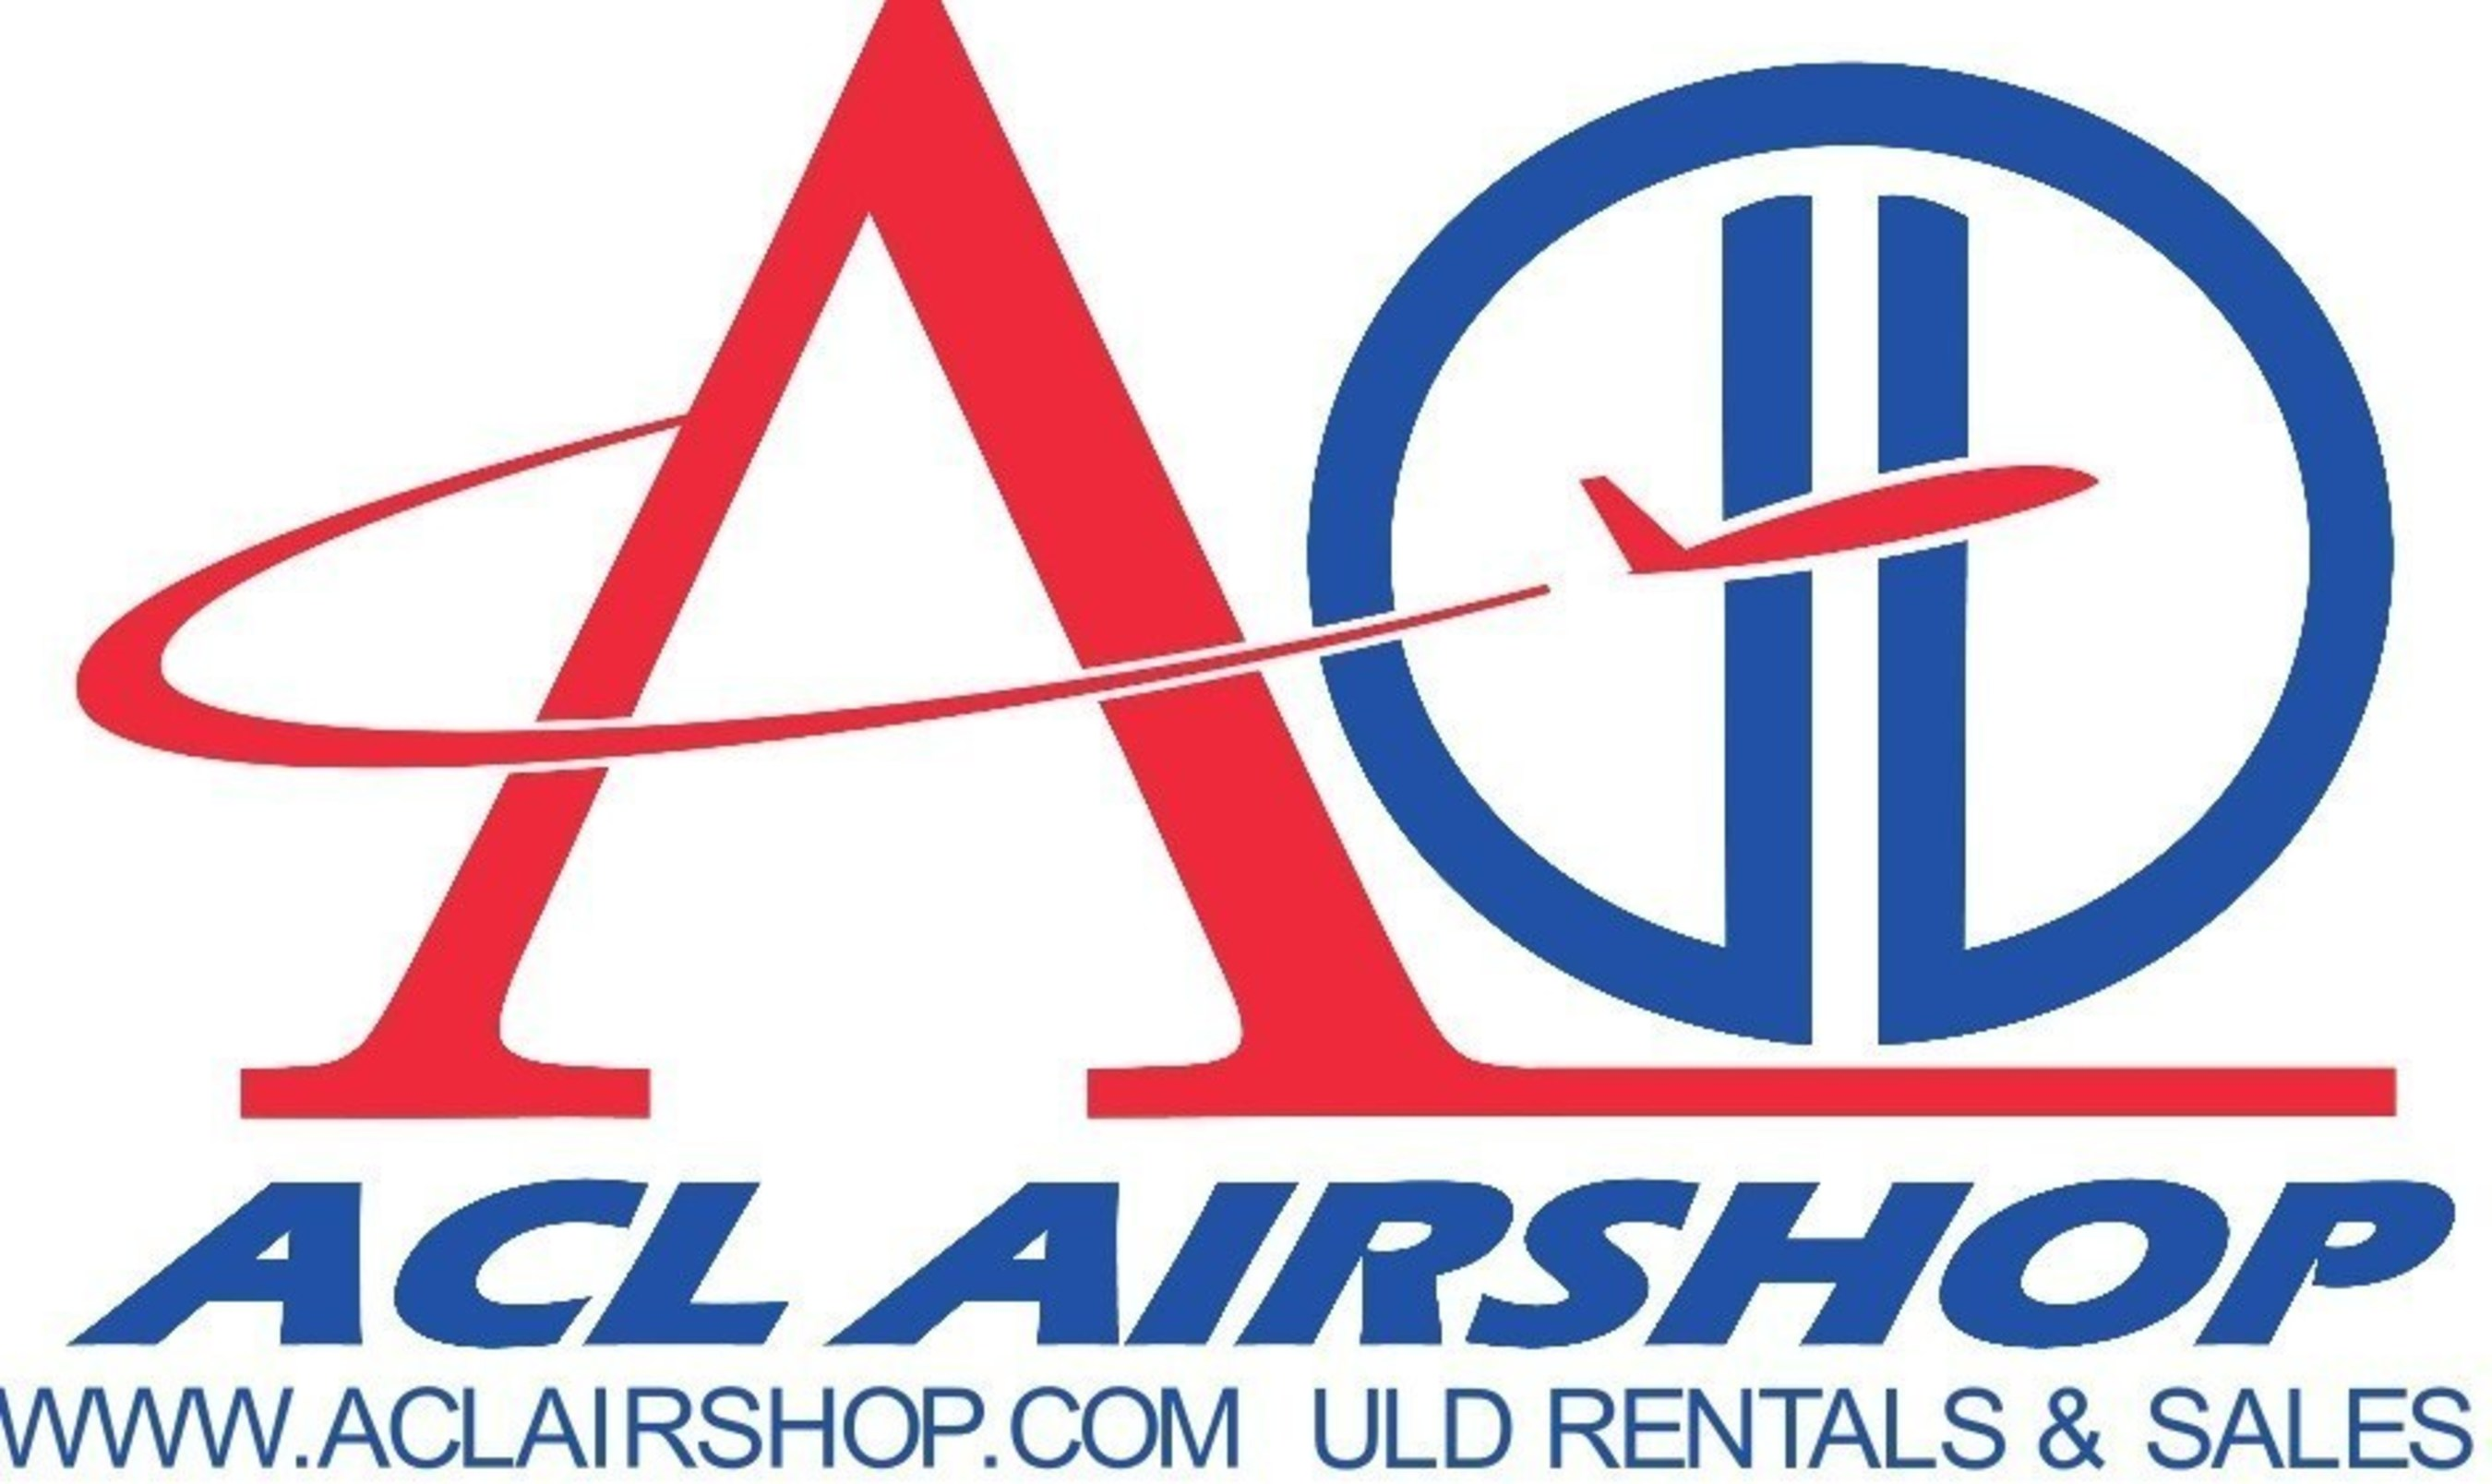 ACL AirShop is a global leader in air cargo products and services.  For more information visit www.aclairshop.com